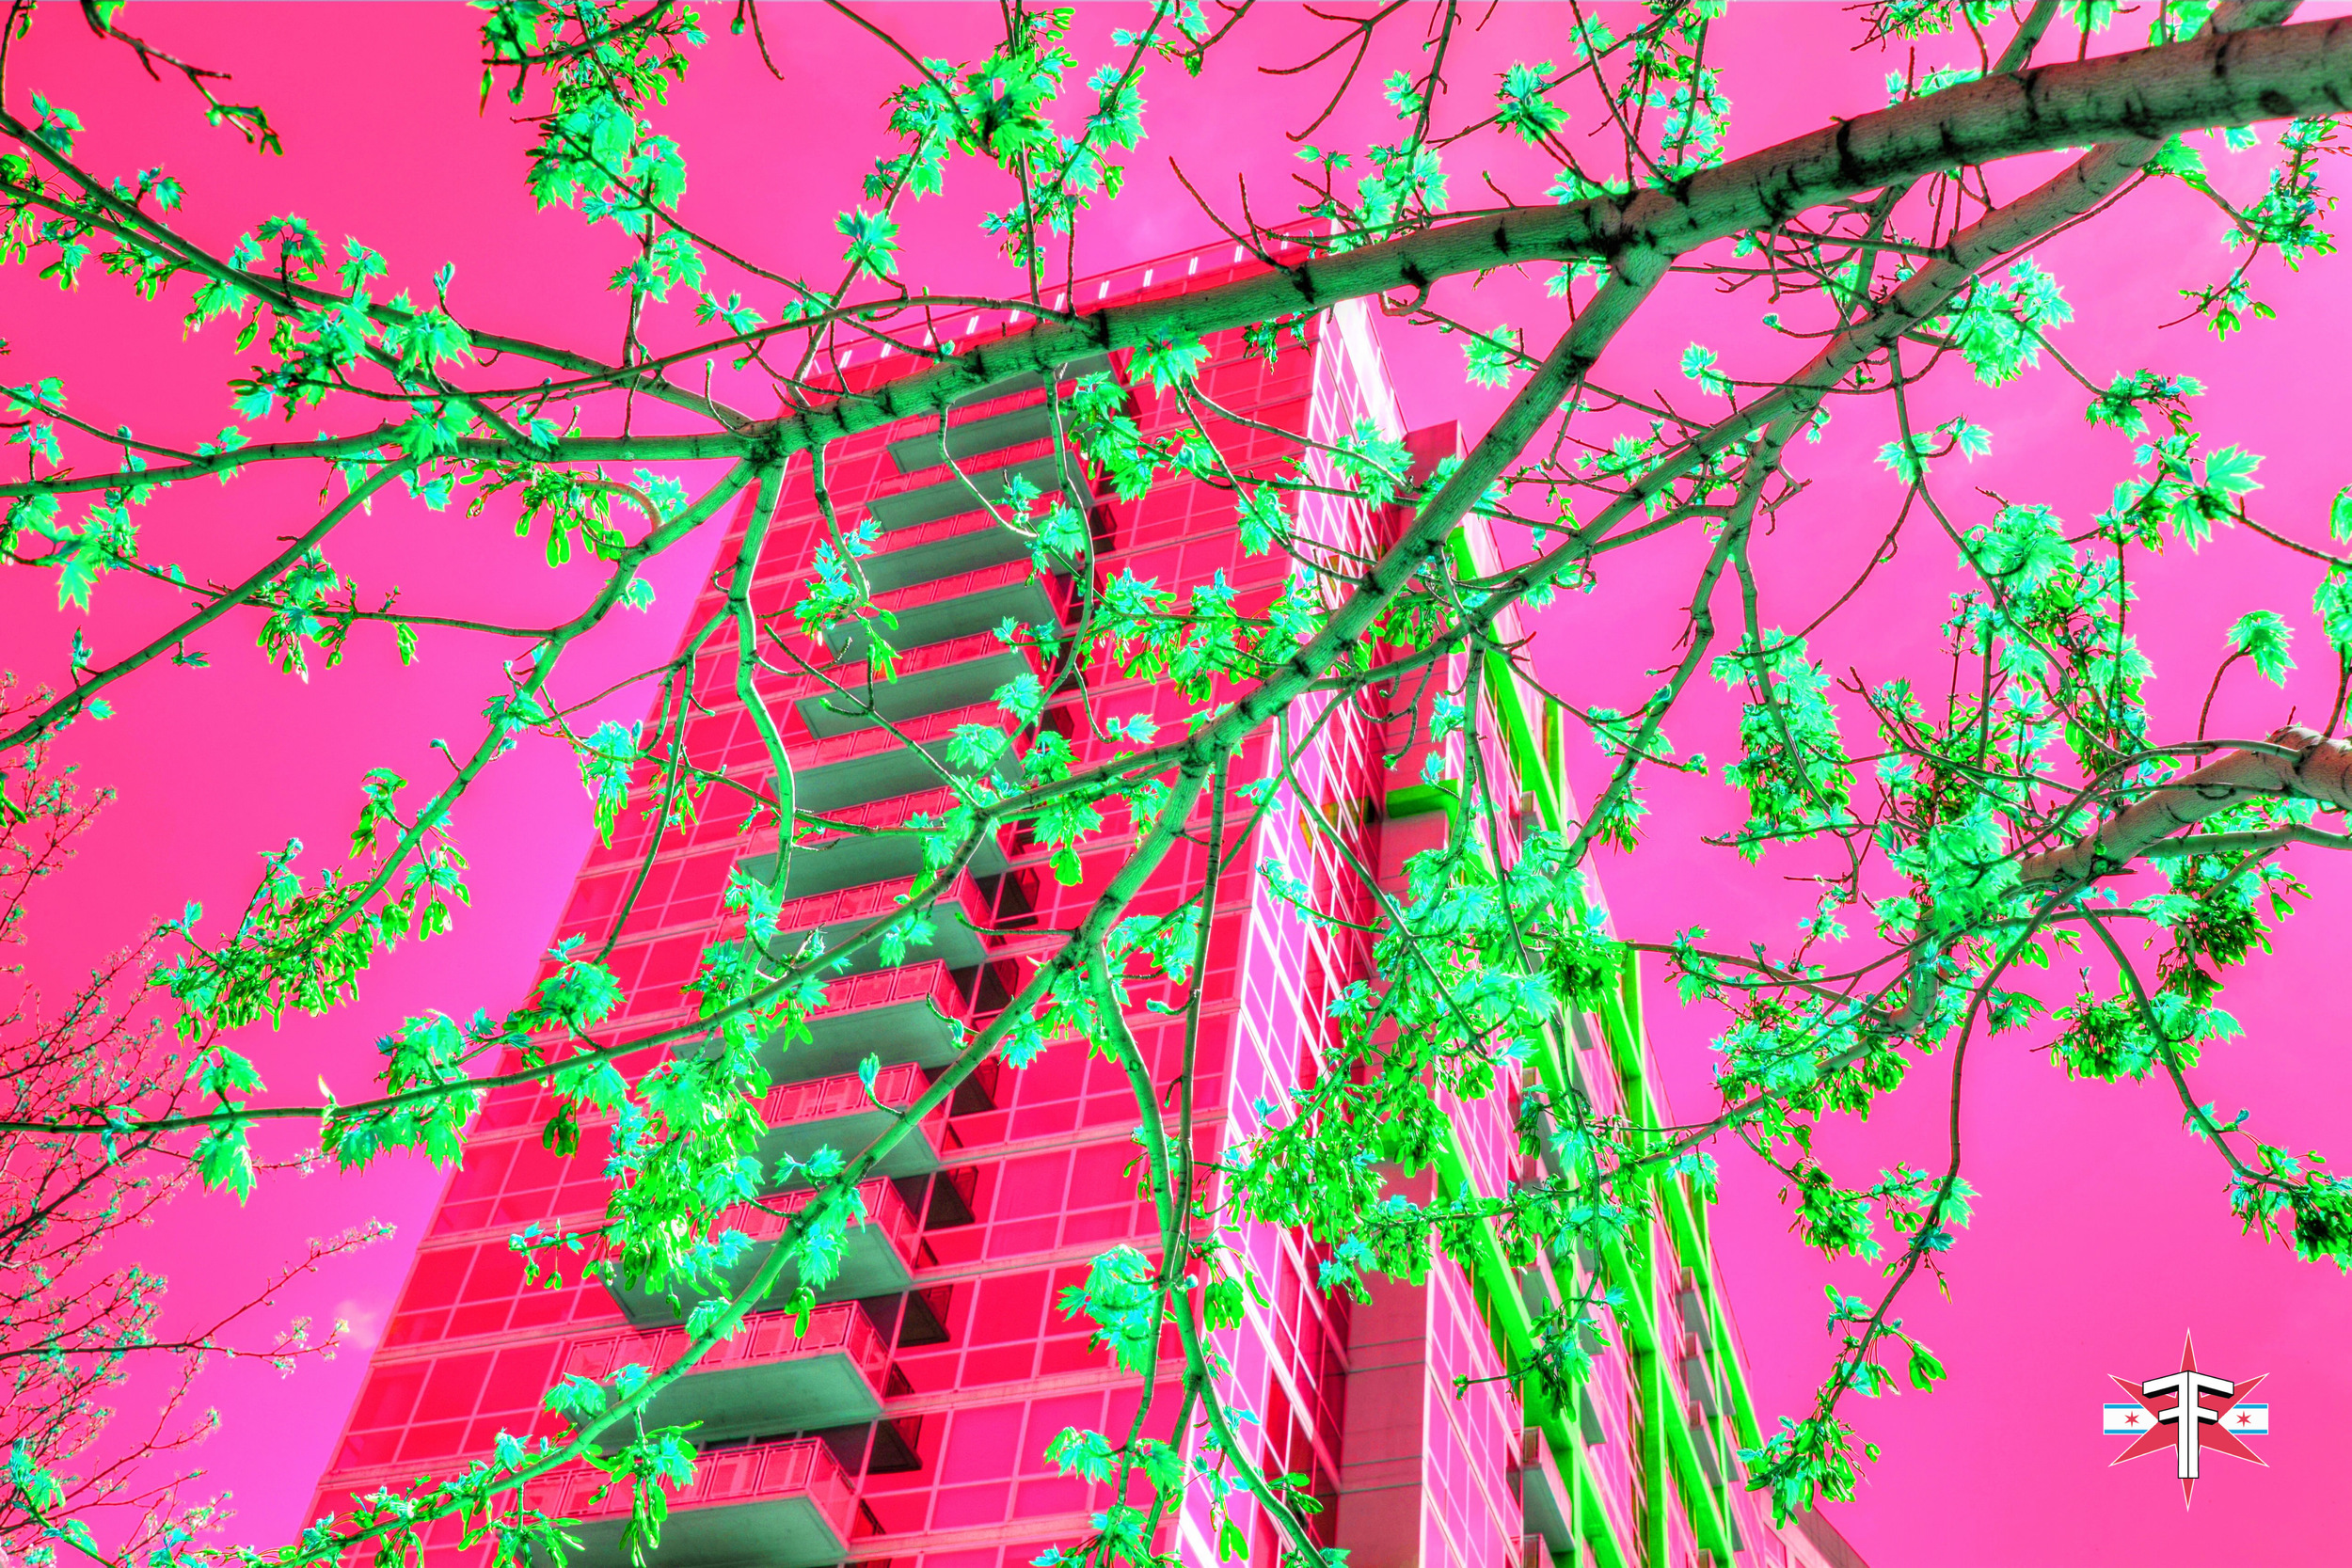 chicago art abstract eric formato photography color travel cityscape architecture saturated citycapes bright vibrant artistic-83.jpg